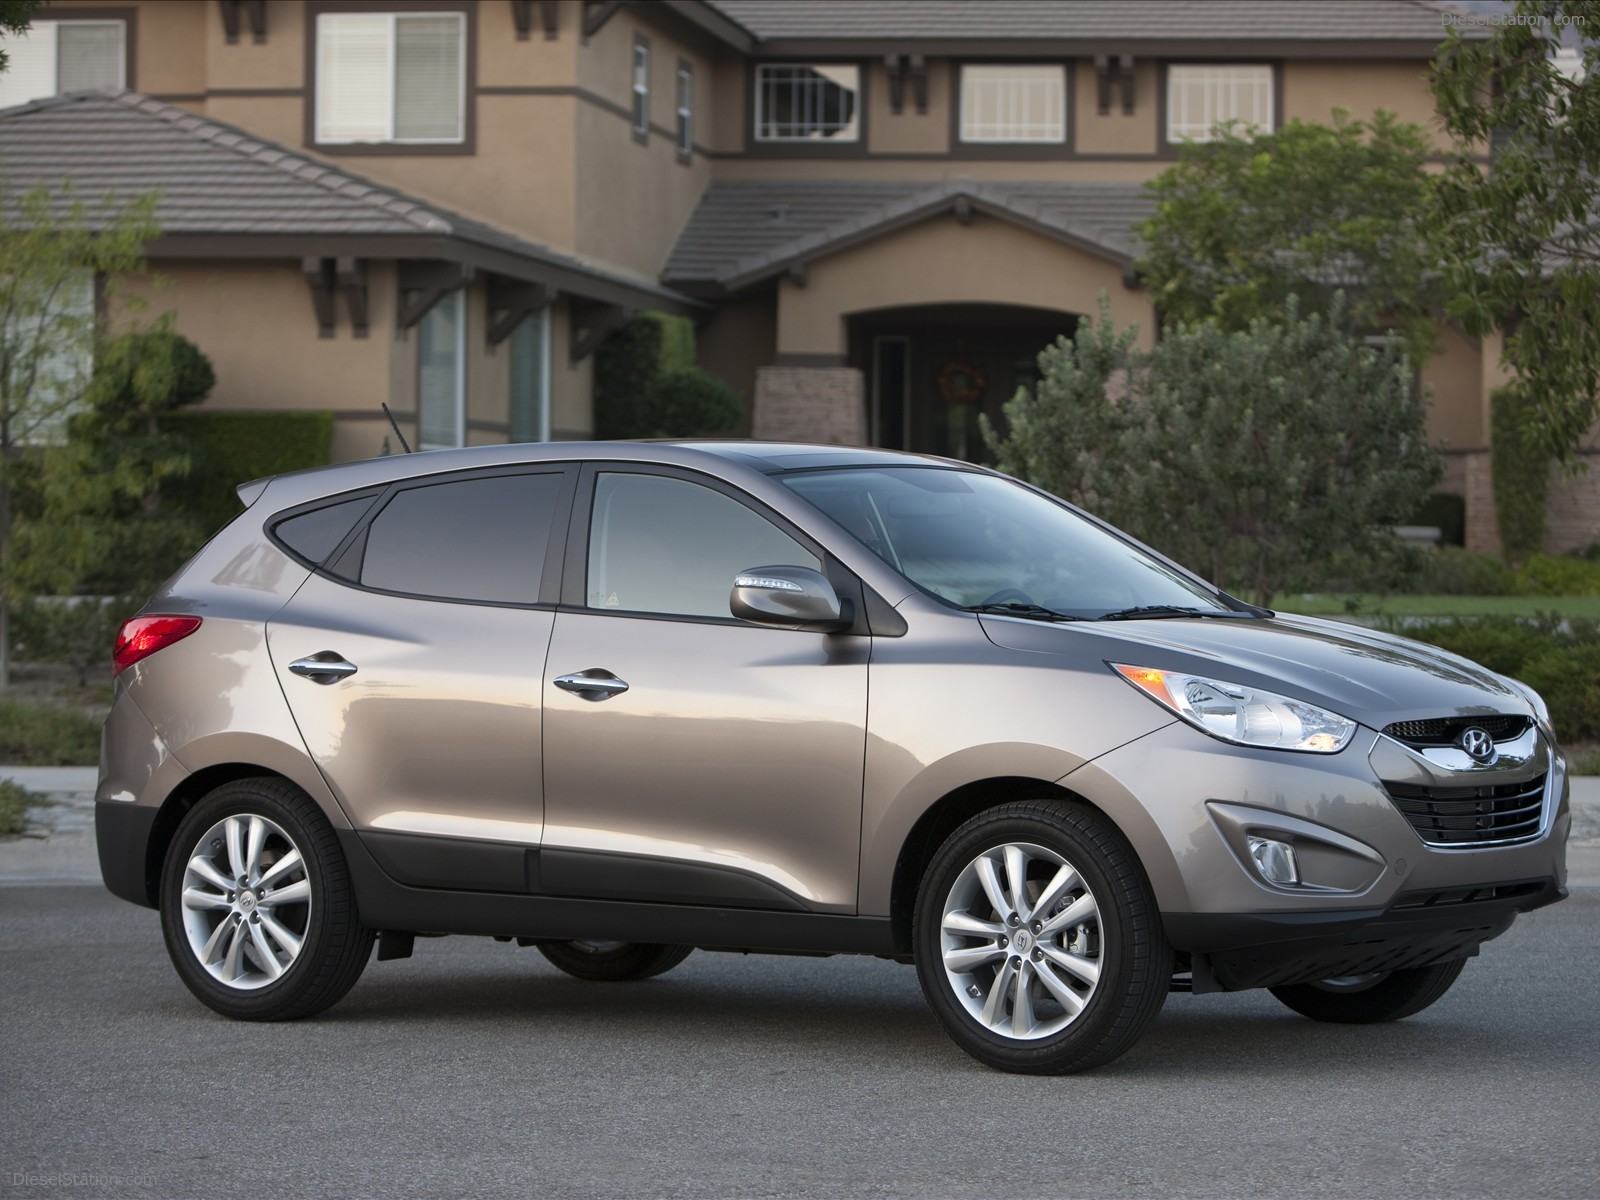 Hyundai tucson photo - 4